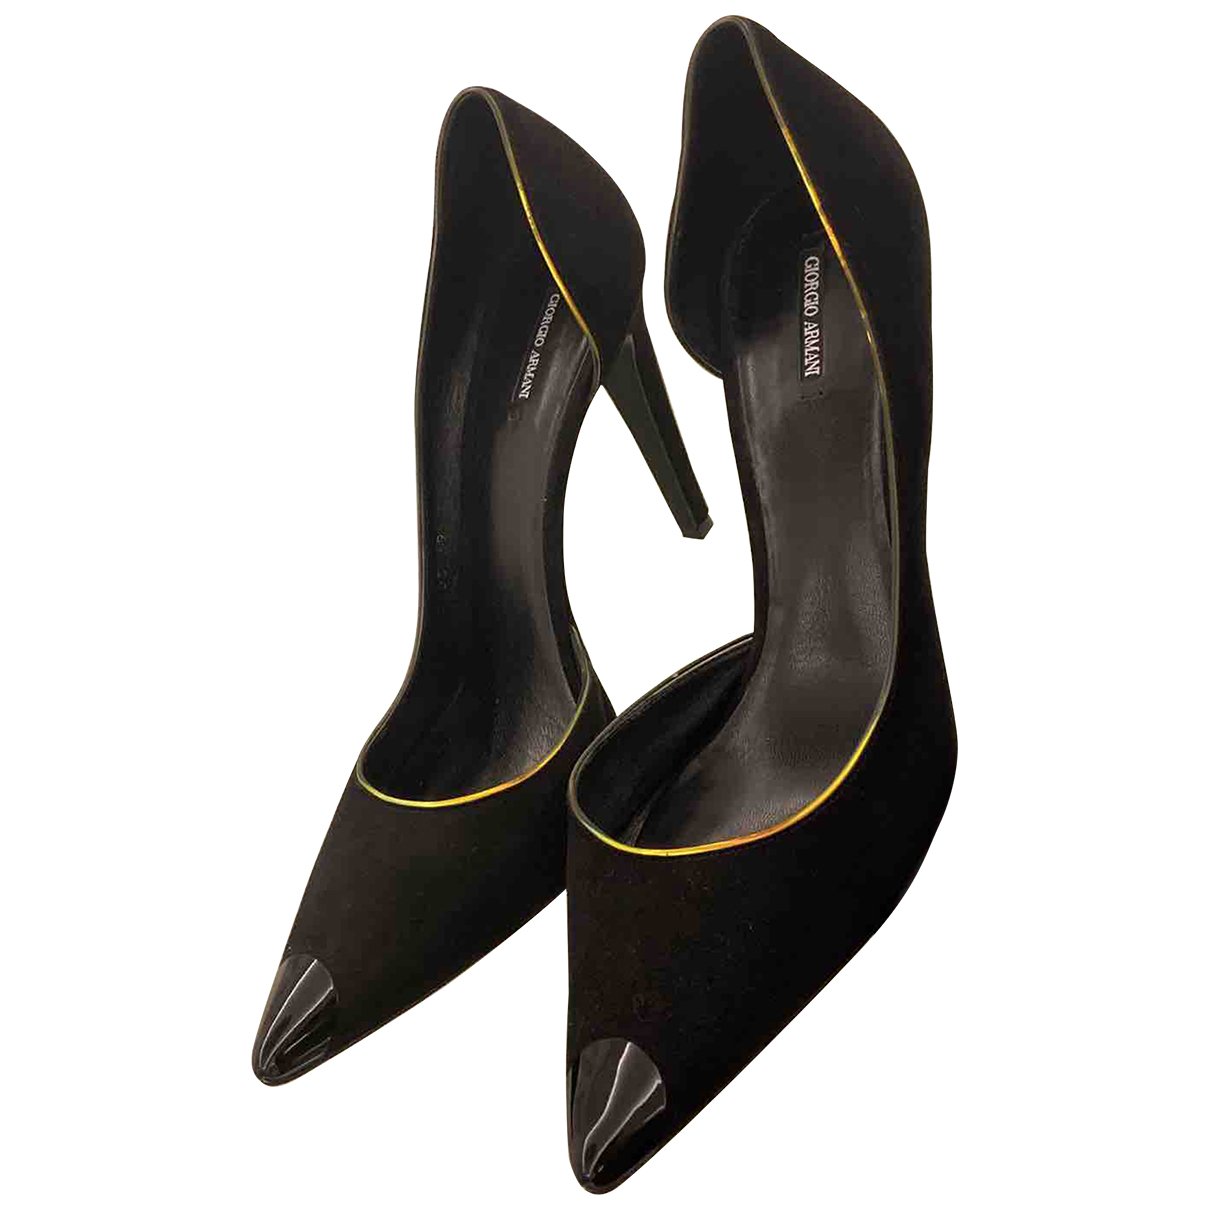 Giorgio Armani N Black Suede Heels for Women 39 EU